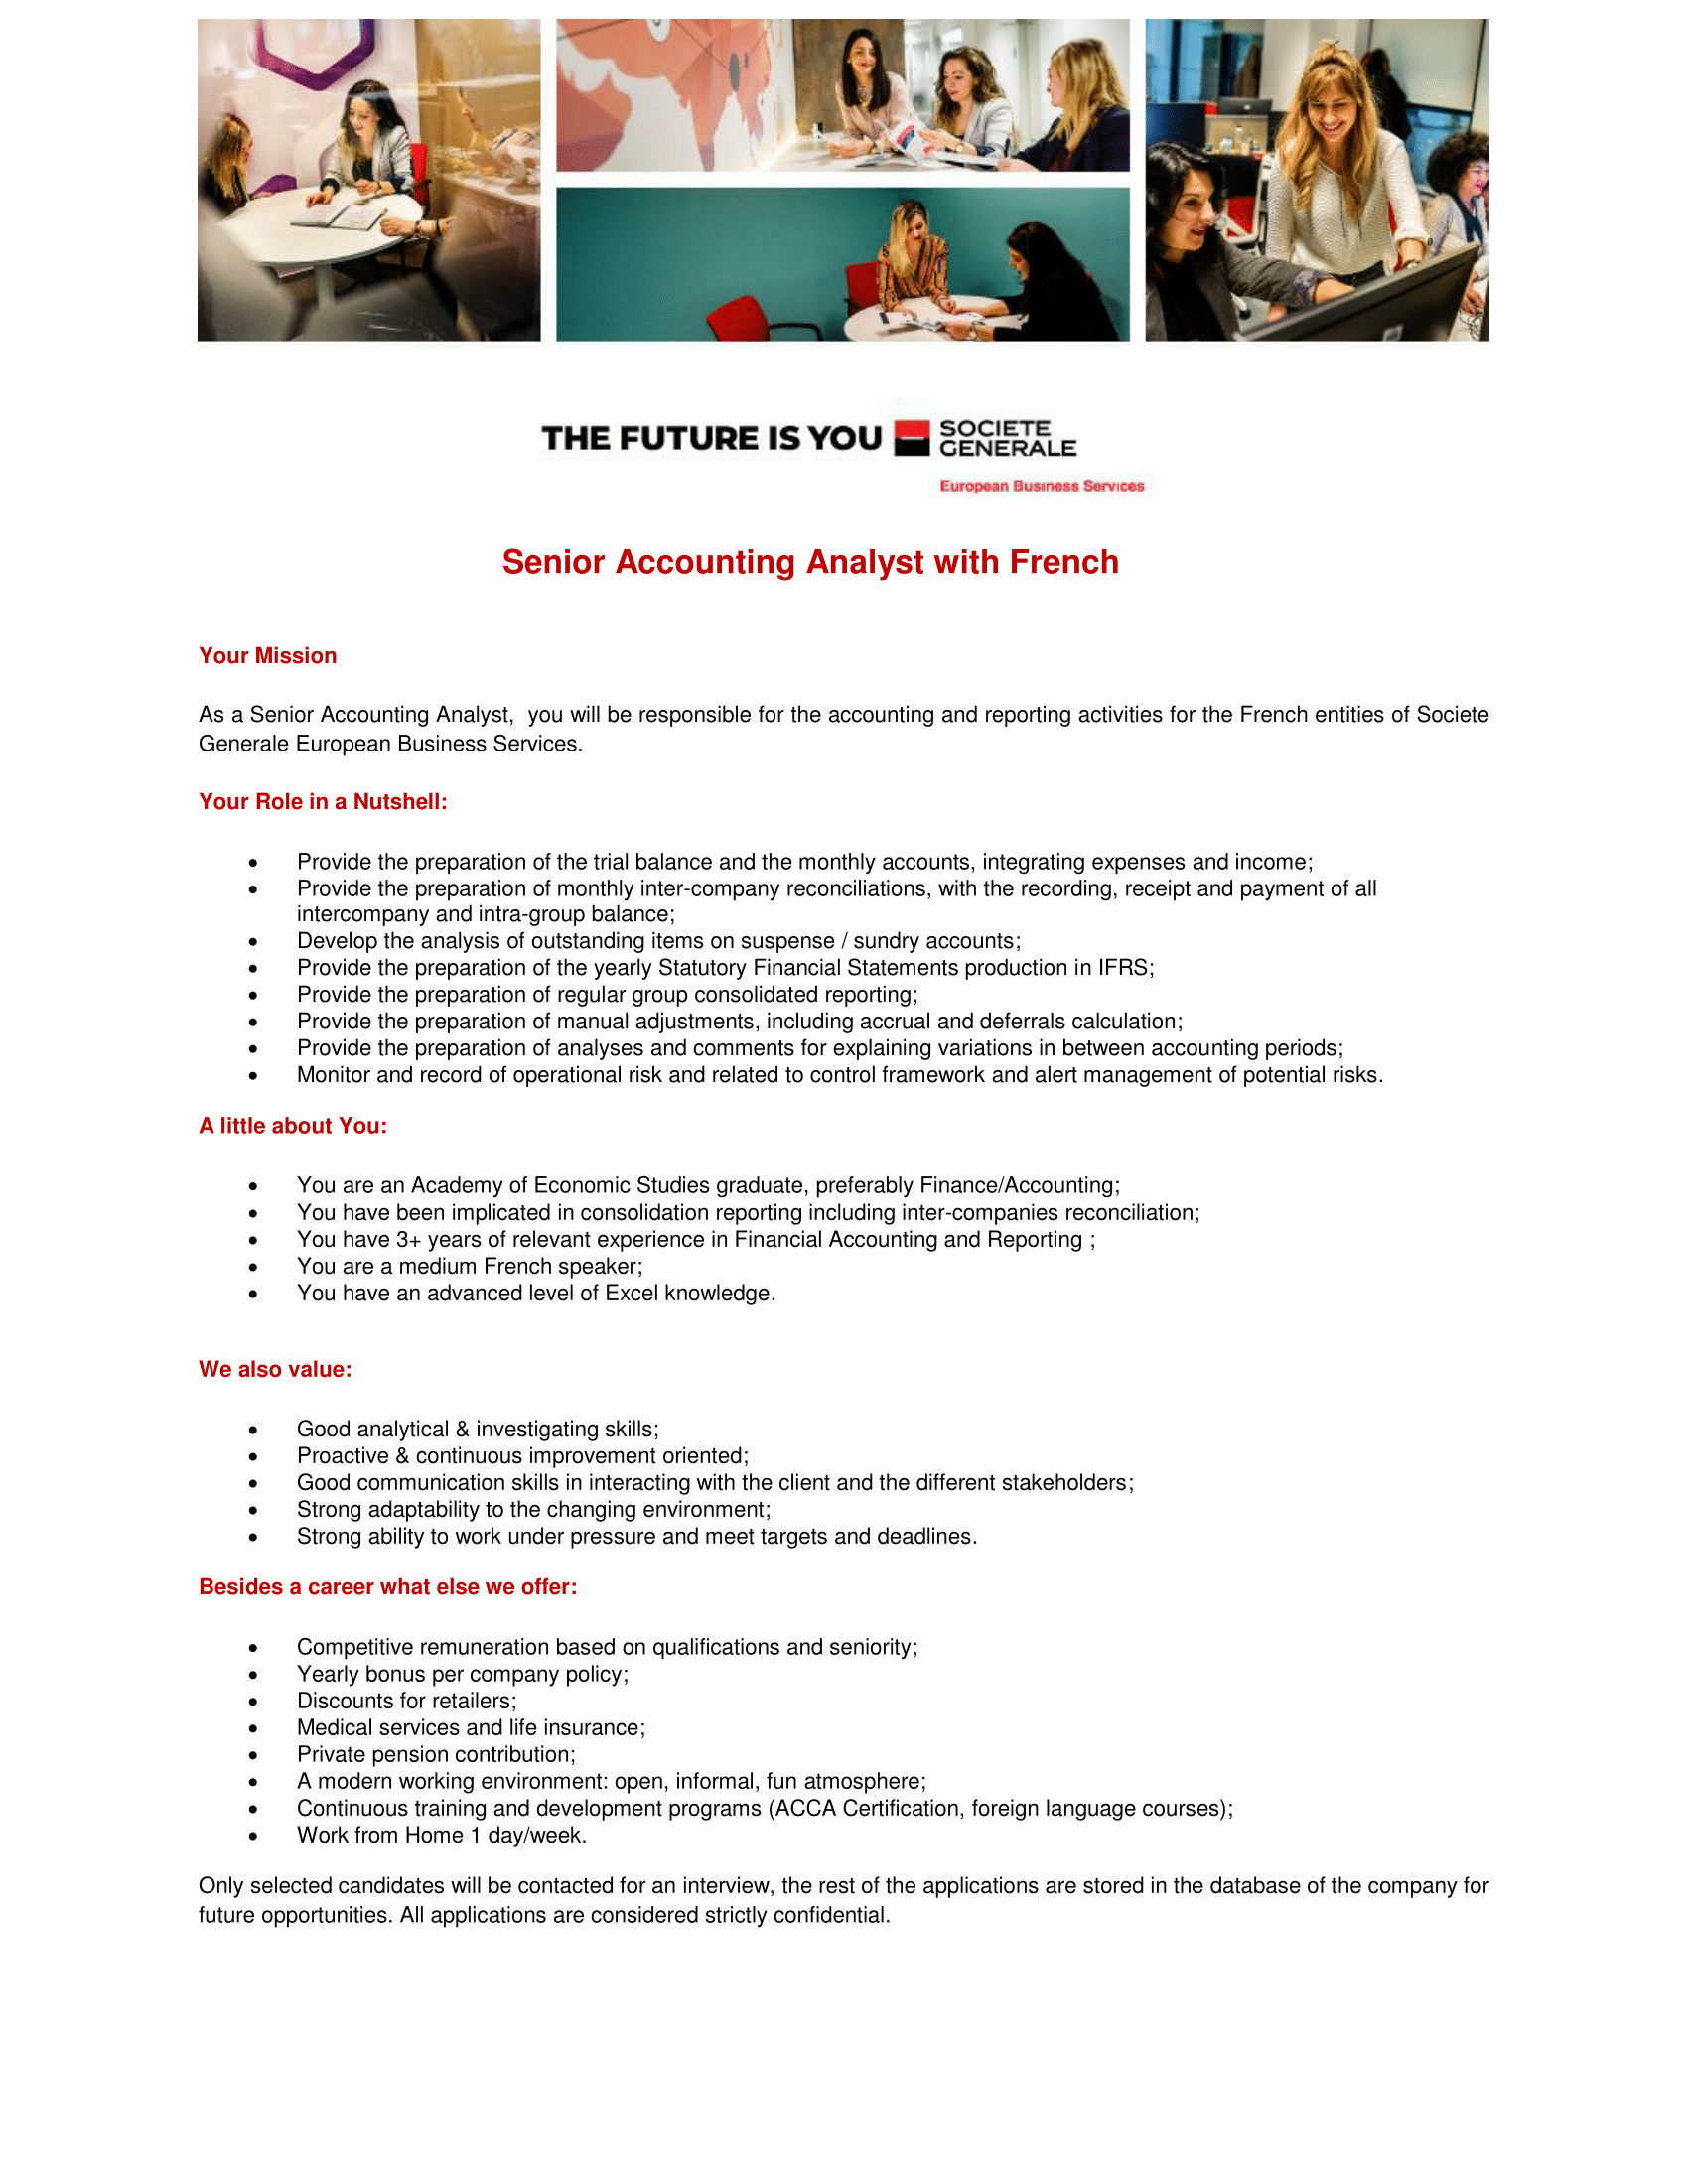 Senior Accounting Analyst with French_NOU-1